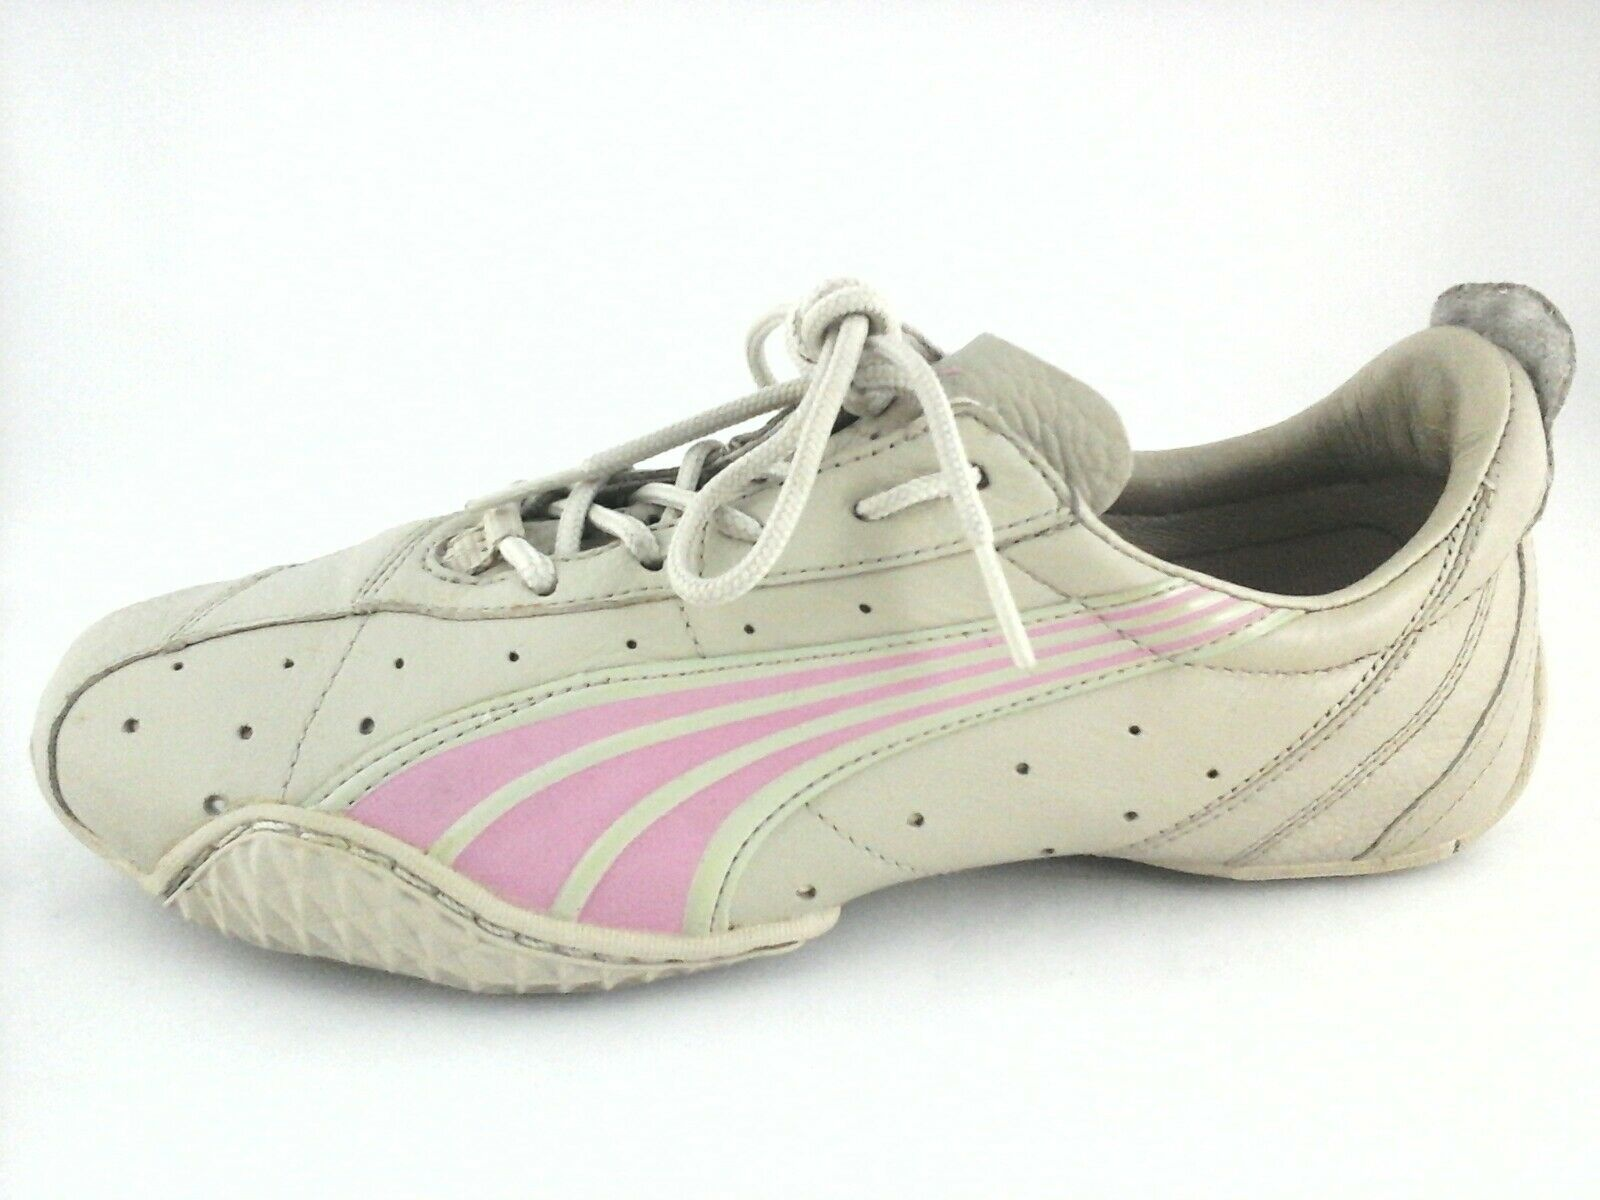 PUMA Sneakers Beige Pink Leather Racing shoes RARE EDITION Women's US 9